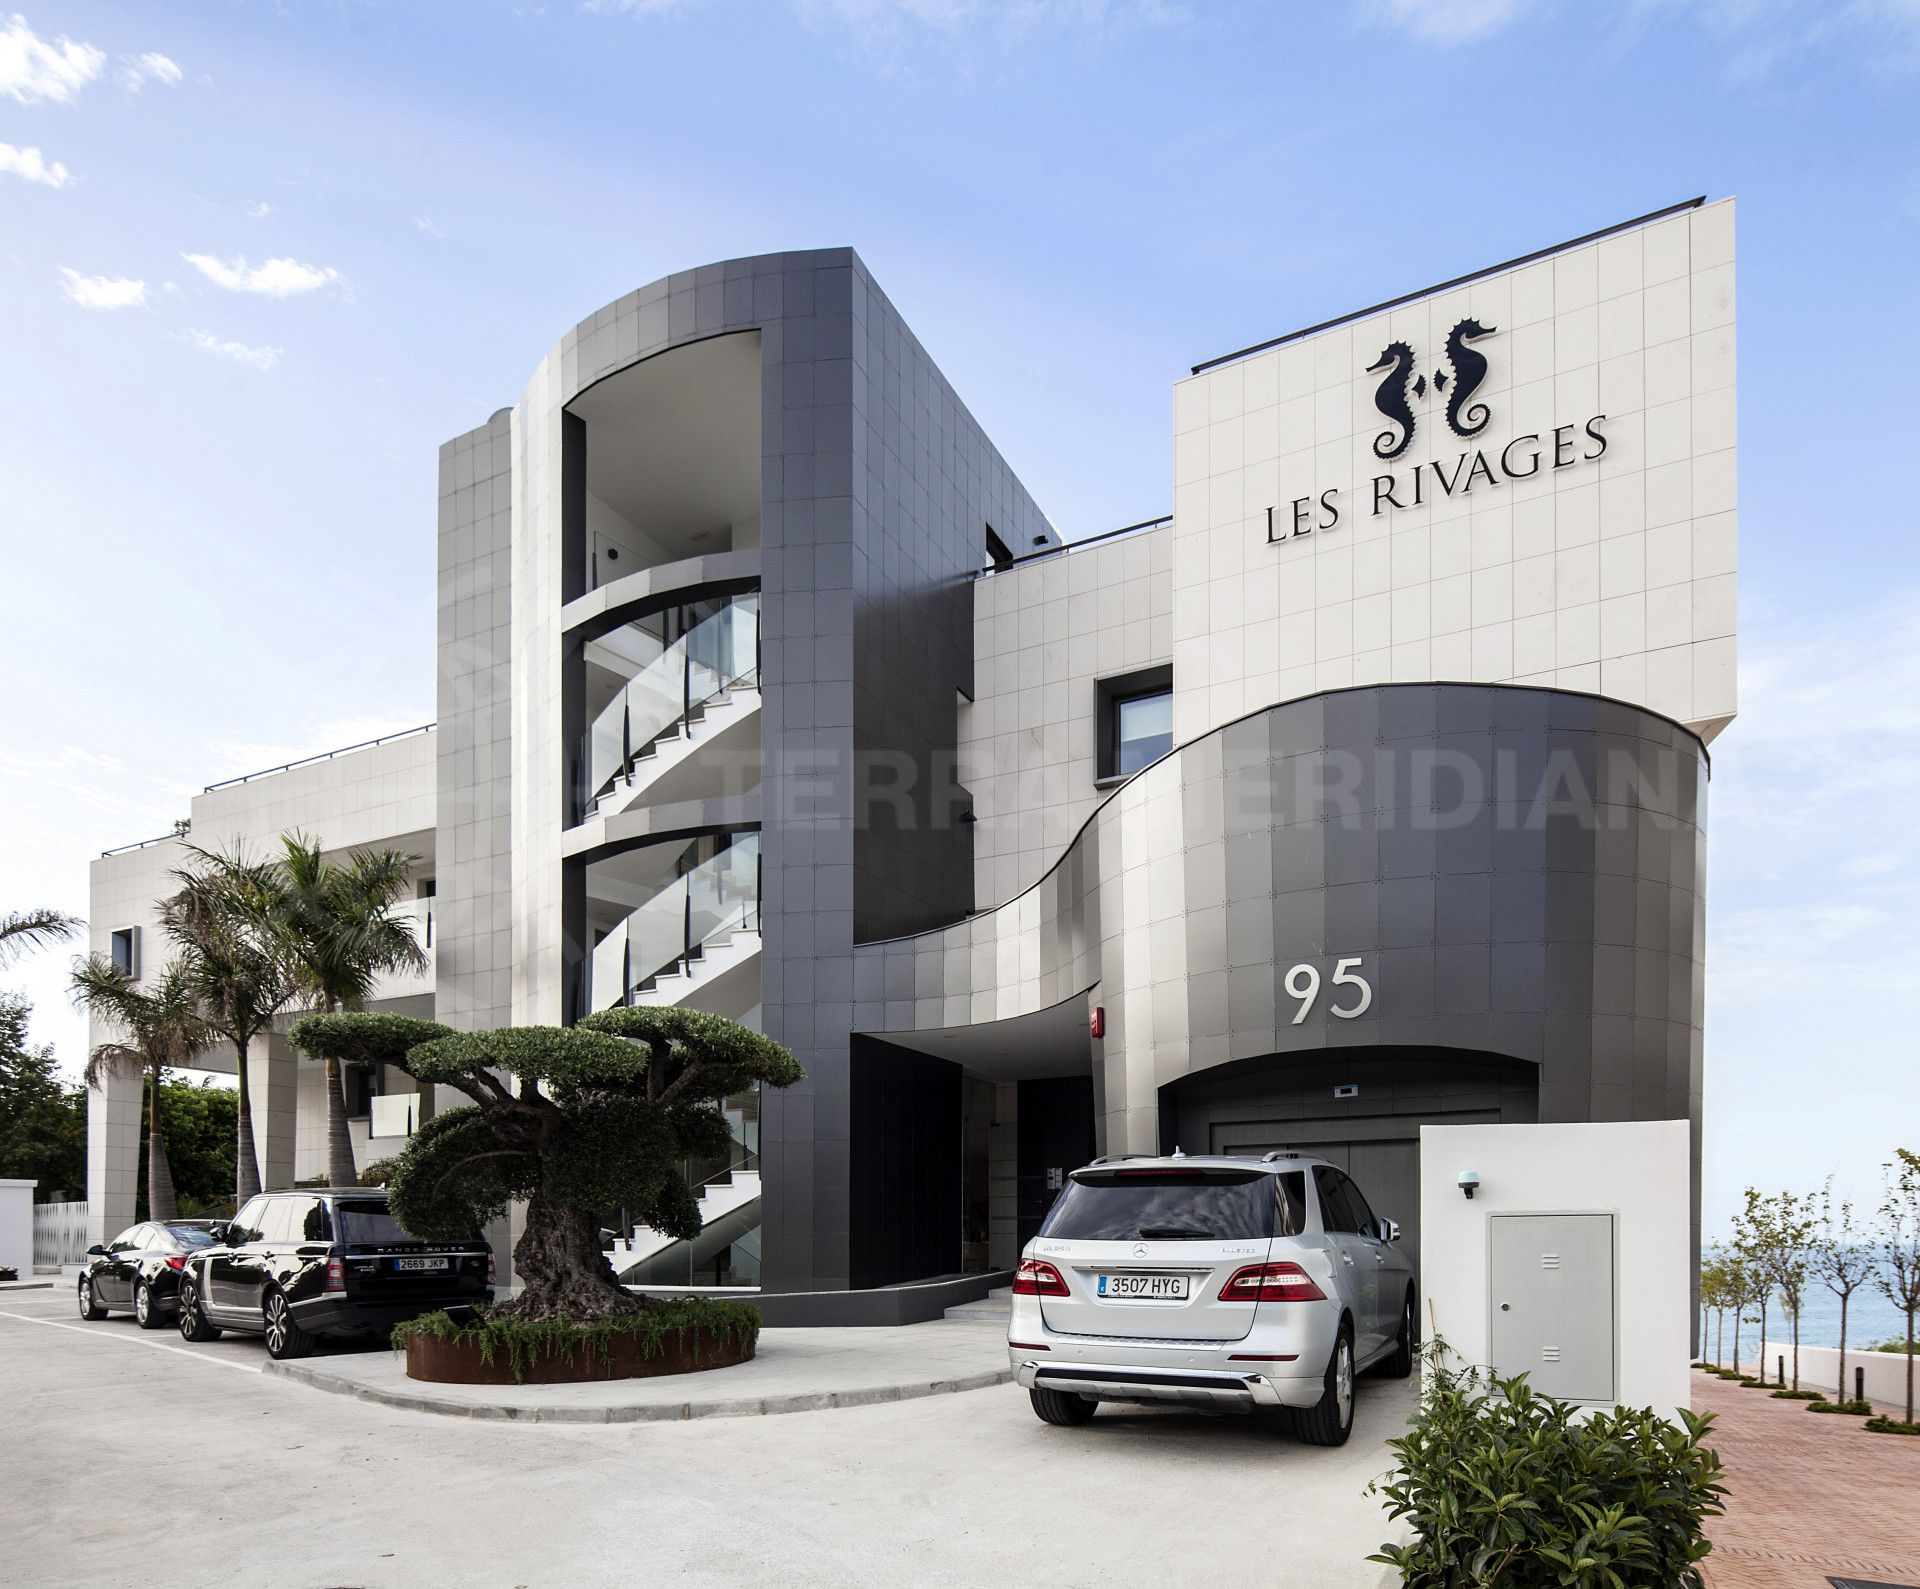 Les Rivages parking entrance